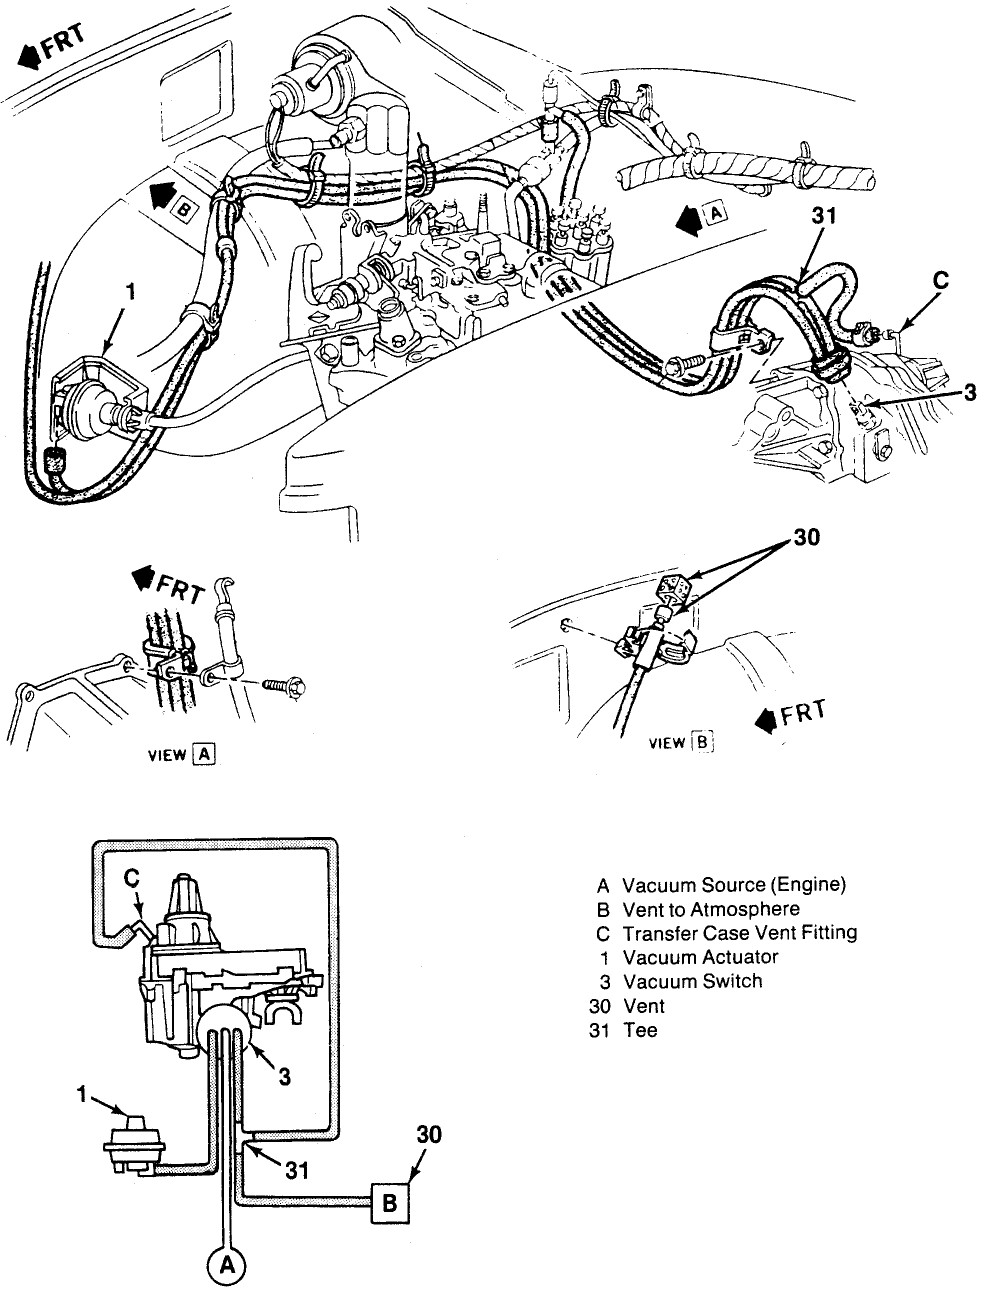 1996 chevrolet tahoe parts diagram ky 1623  02 chevy tahoe wiring diagram  ky 1623  02 chevy tahoe wiring diagram